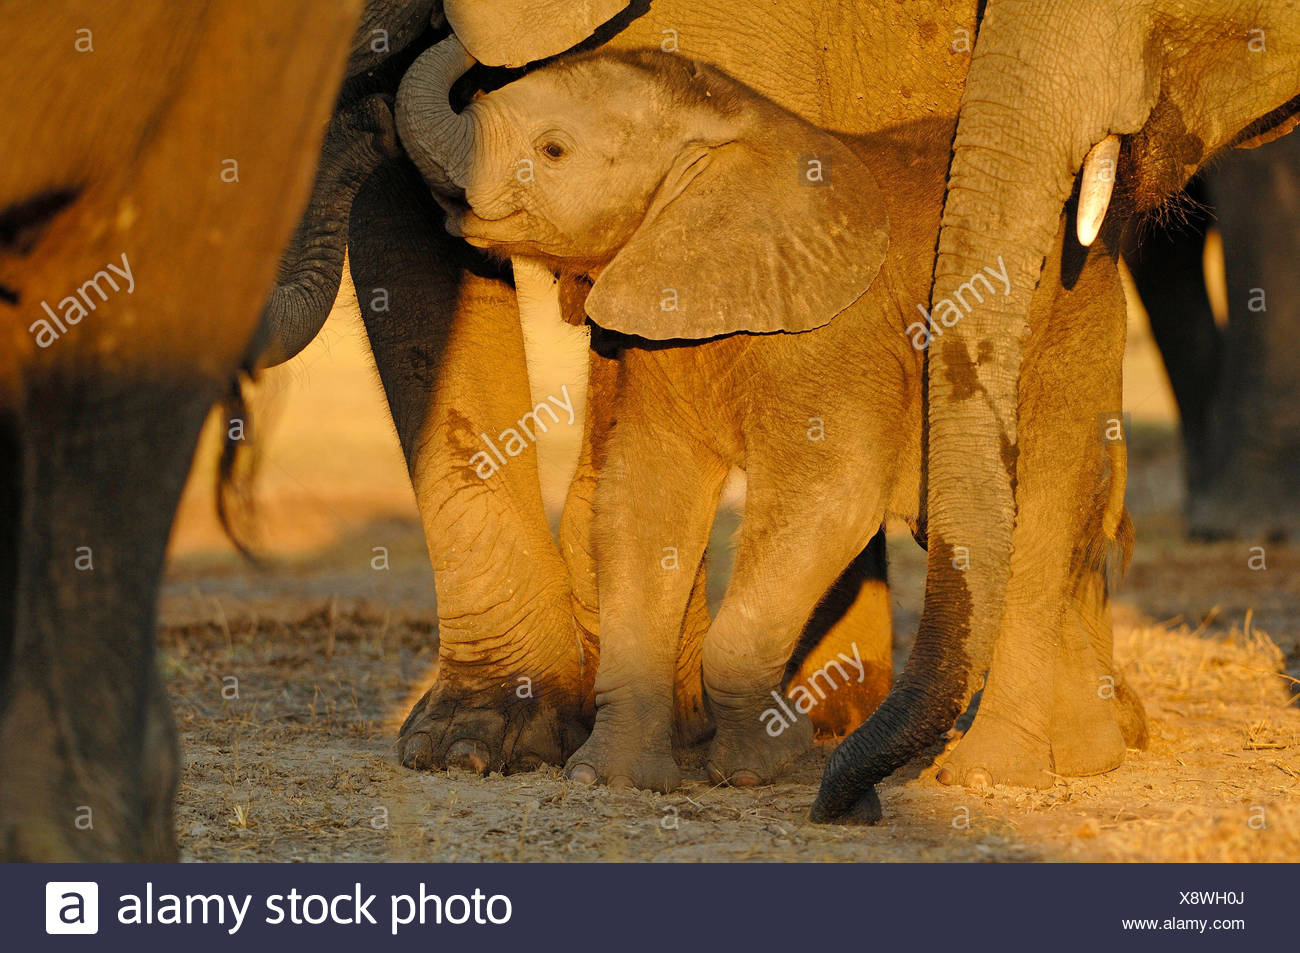 African elephant (Loxodonta africana), protected baby elephant in the midst of the herd, Botswana, Chobe National Park - Stock Image